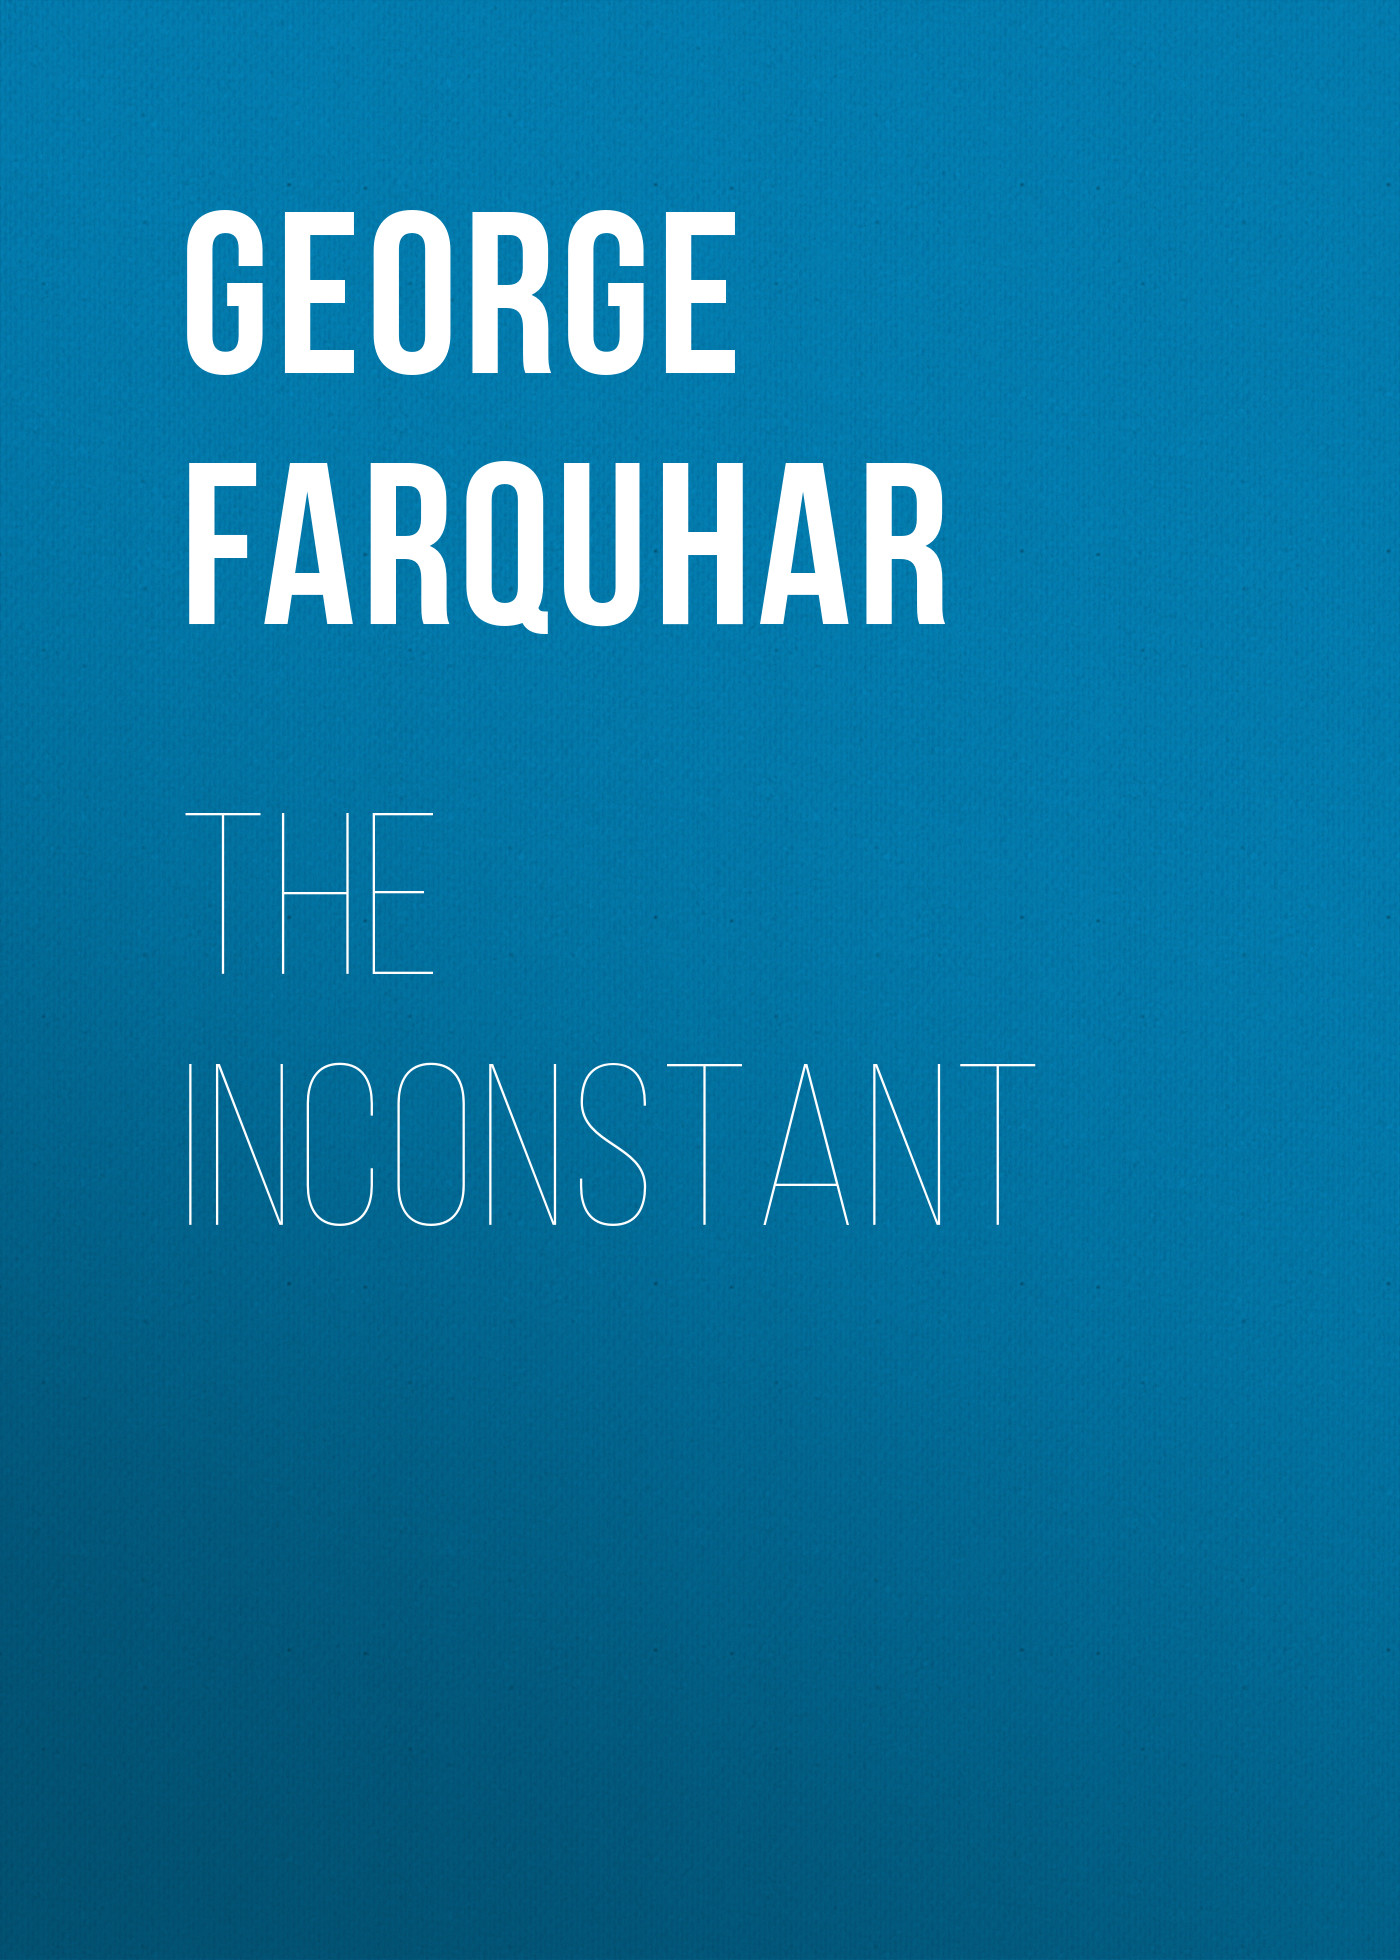 George Farquhar The Inconstant george farquhar the recruiting officer